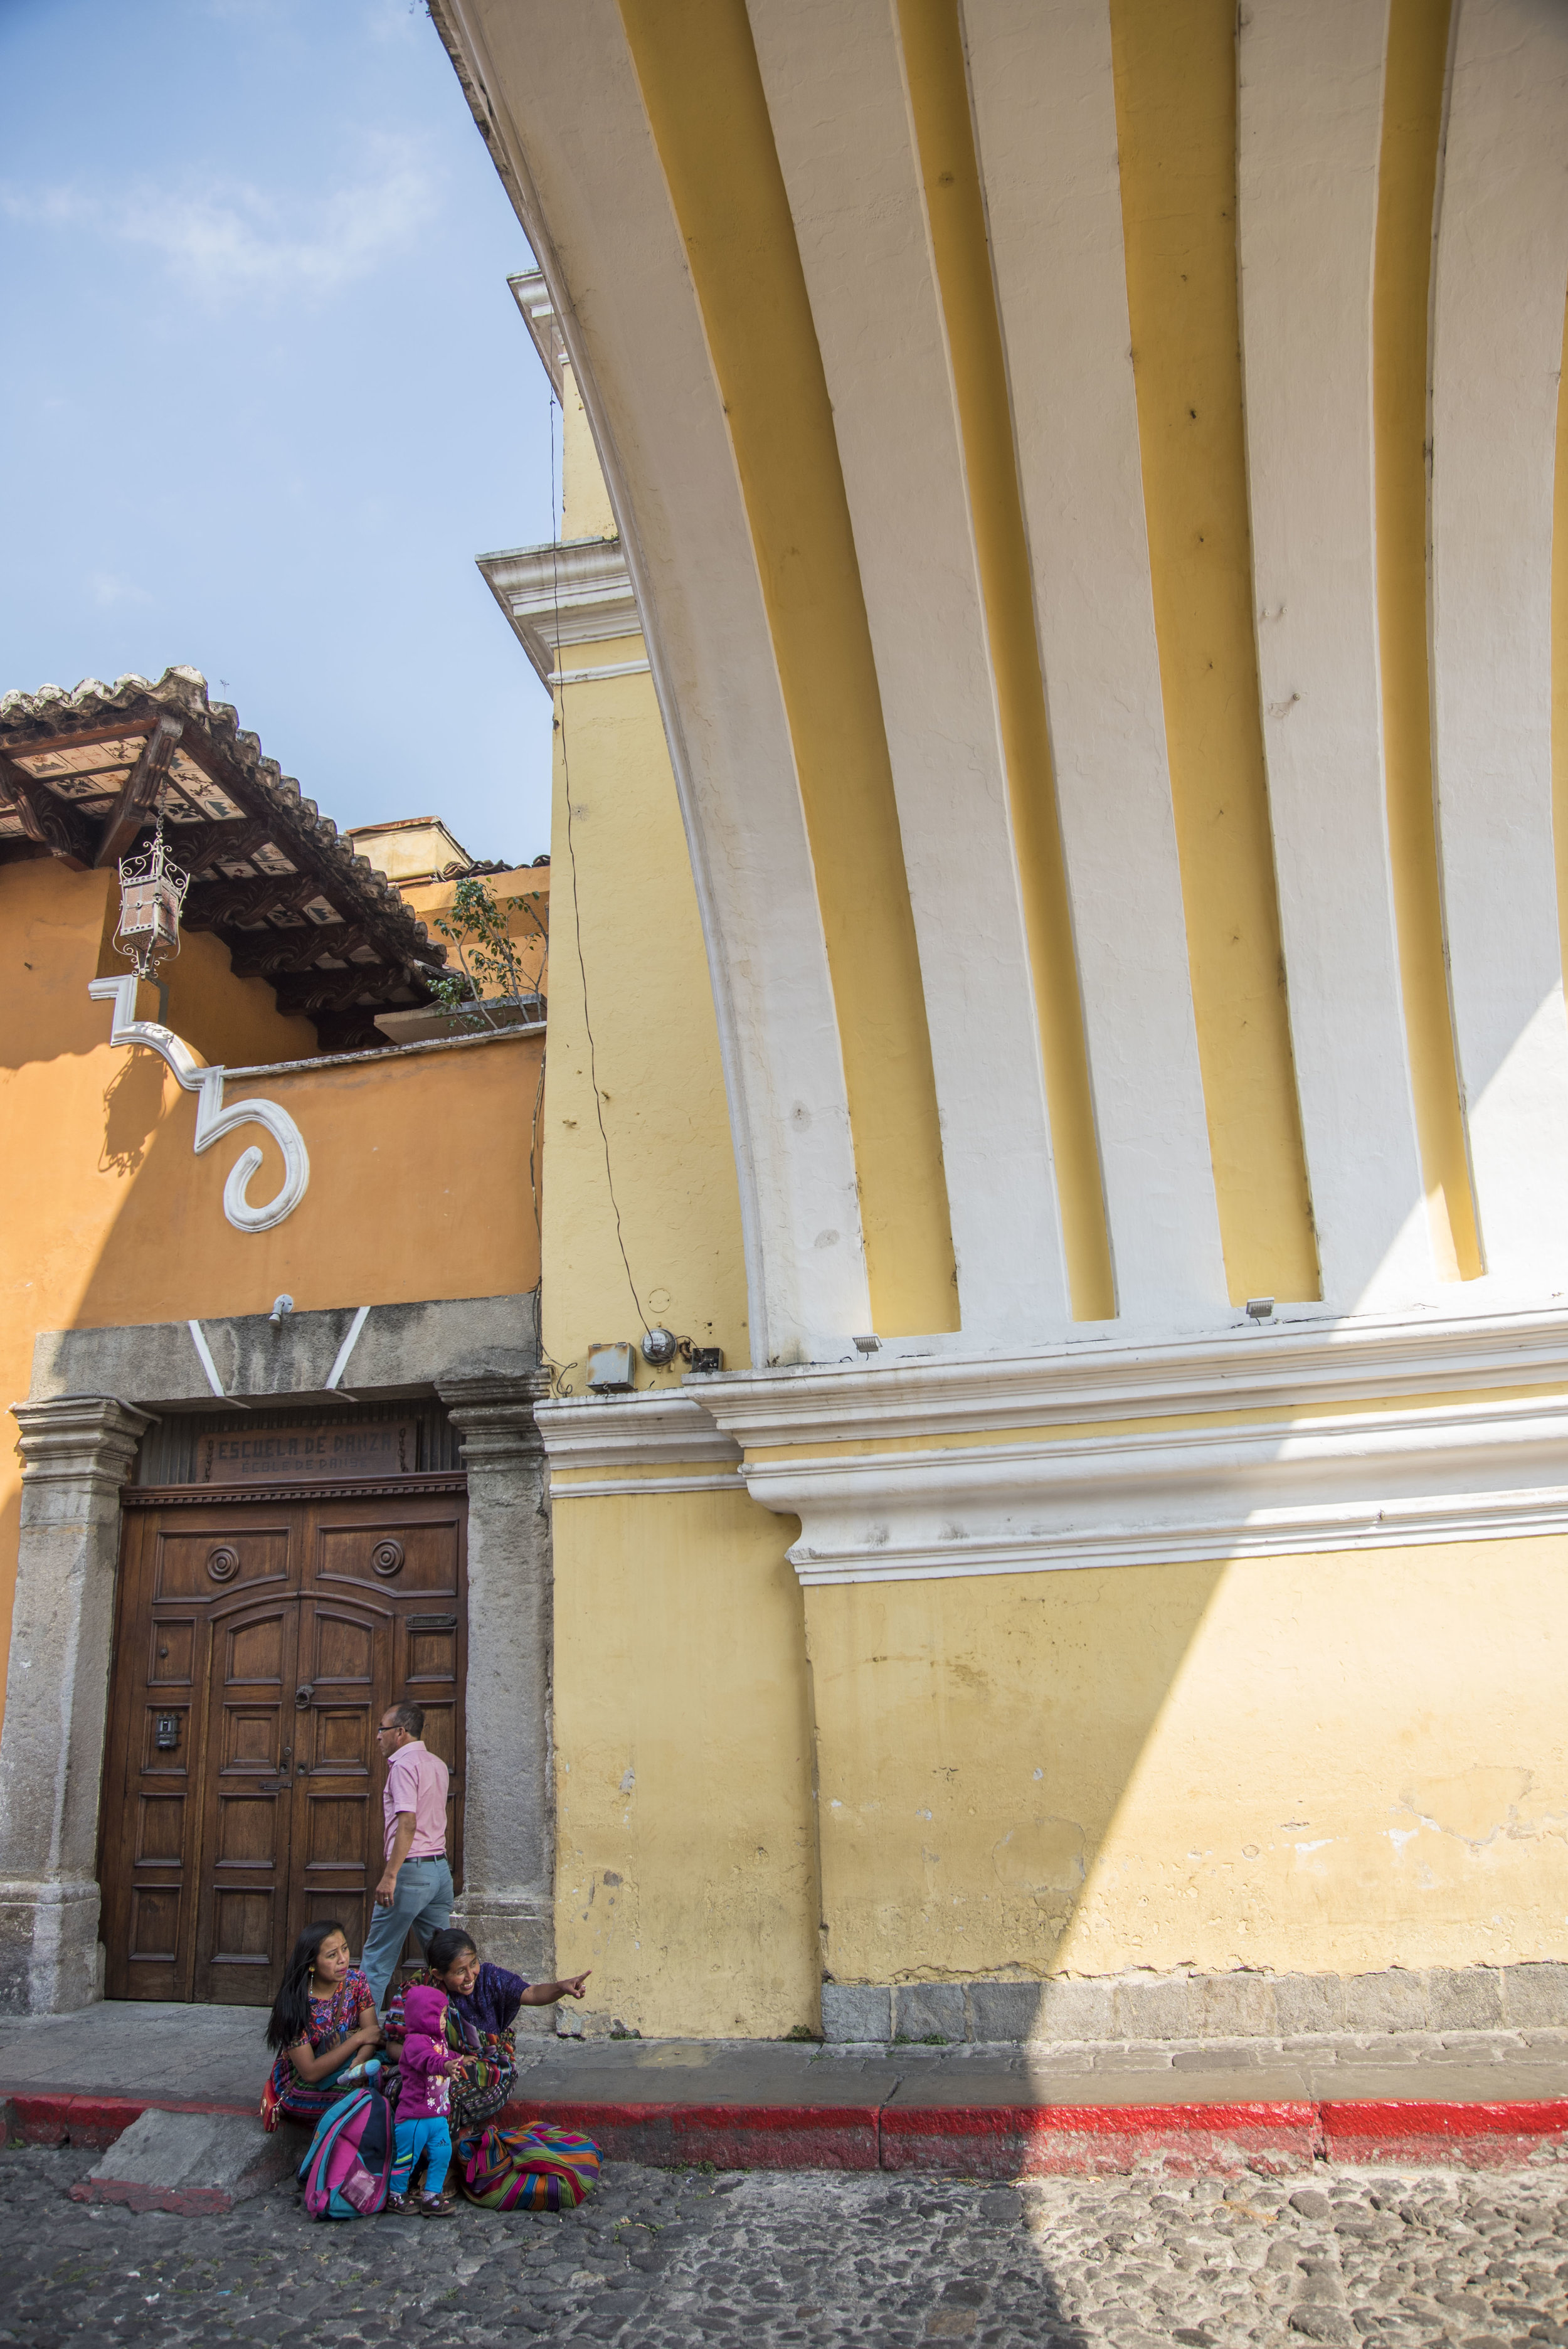 I was bored of pictures of Antigua's iconic arch, so here's what was going on under the arch. Pointing is rude, lady! (Antigua, Guatemala; Feb 2017)